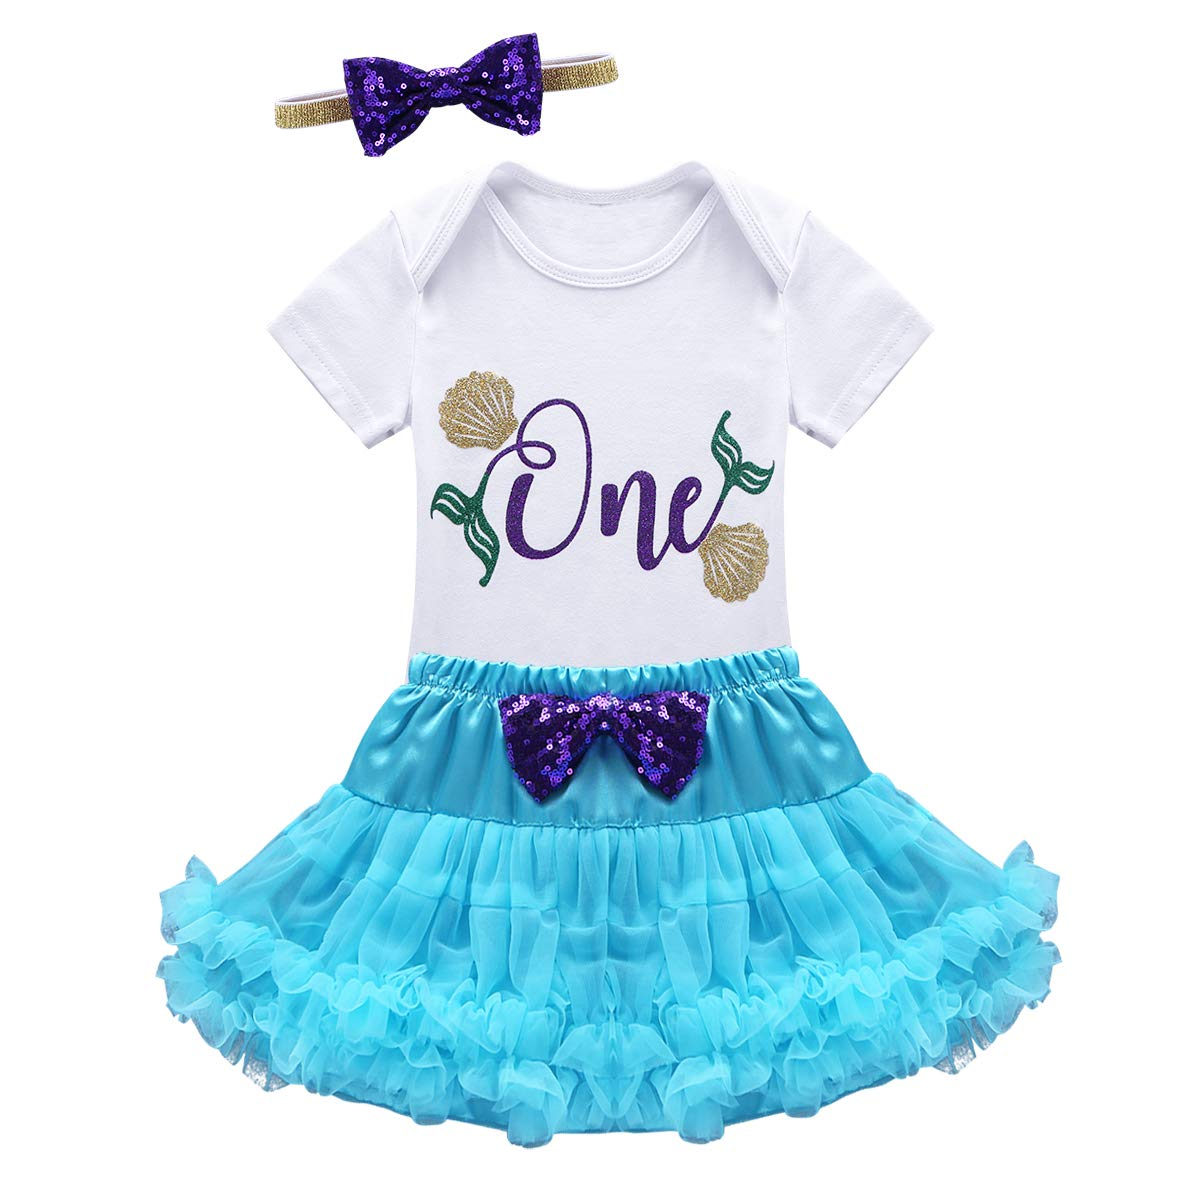 dPois Infant Baby Girls 1st//2nd Birthday Party Mermaid 3Pcs Outfit Short Sleeves Romper with Tutu Skirt Headband Set